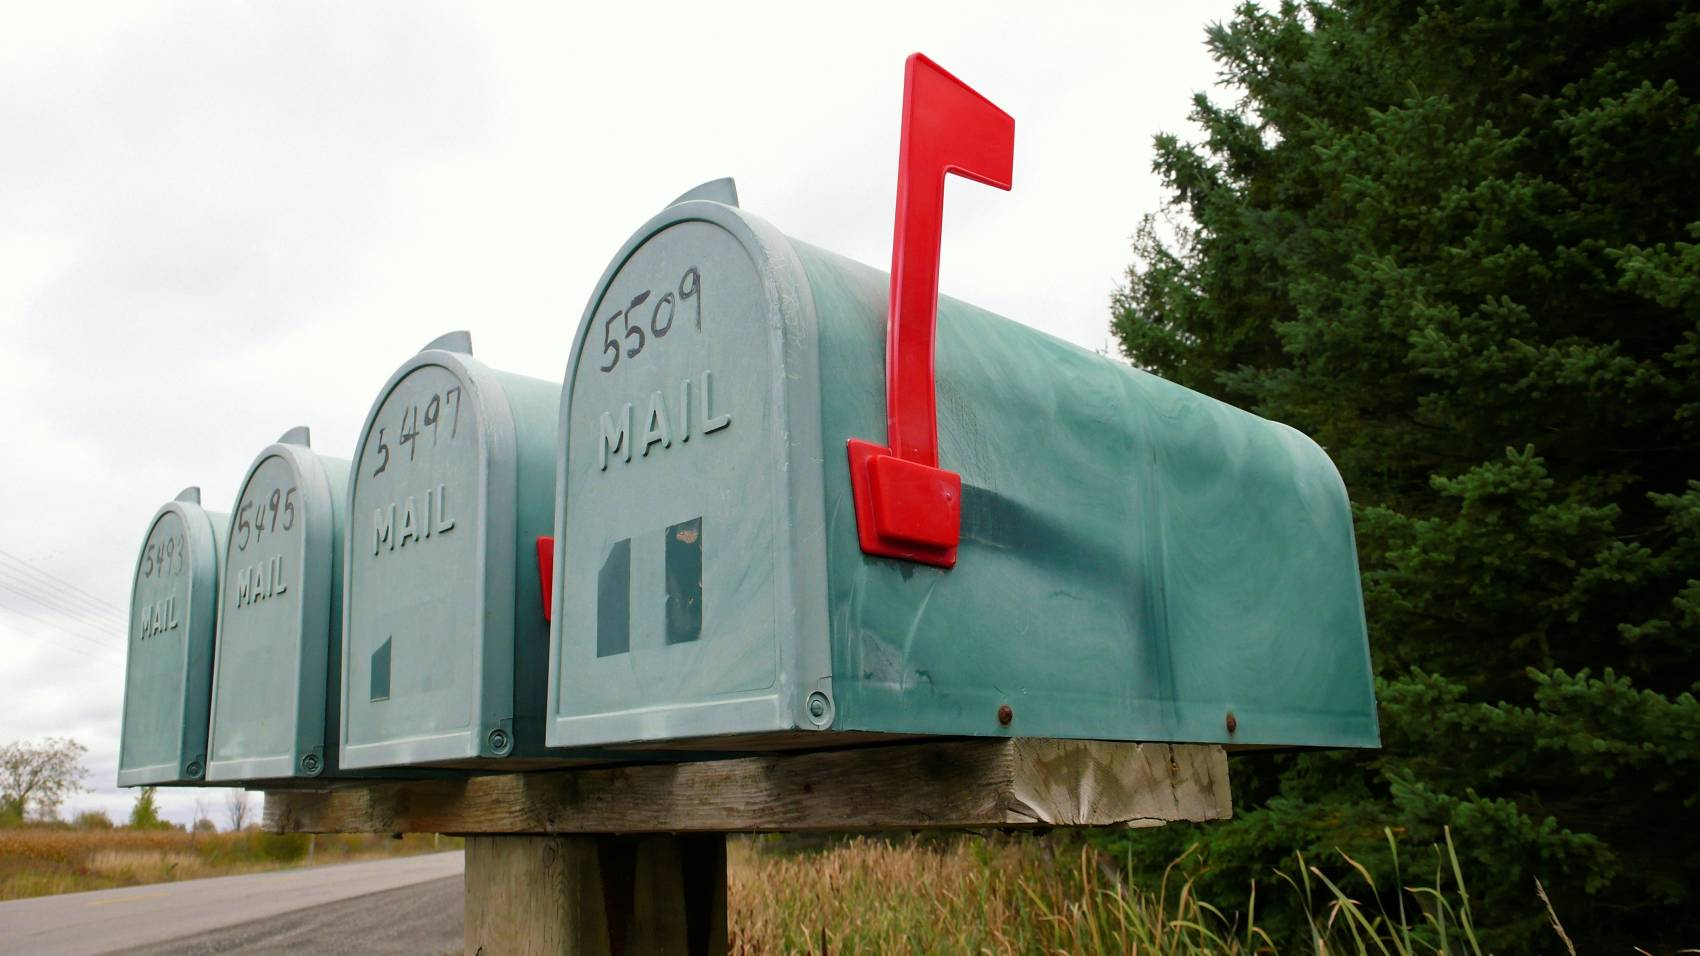 green mailboxes waiting for mail delivery